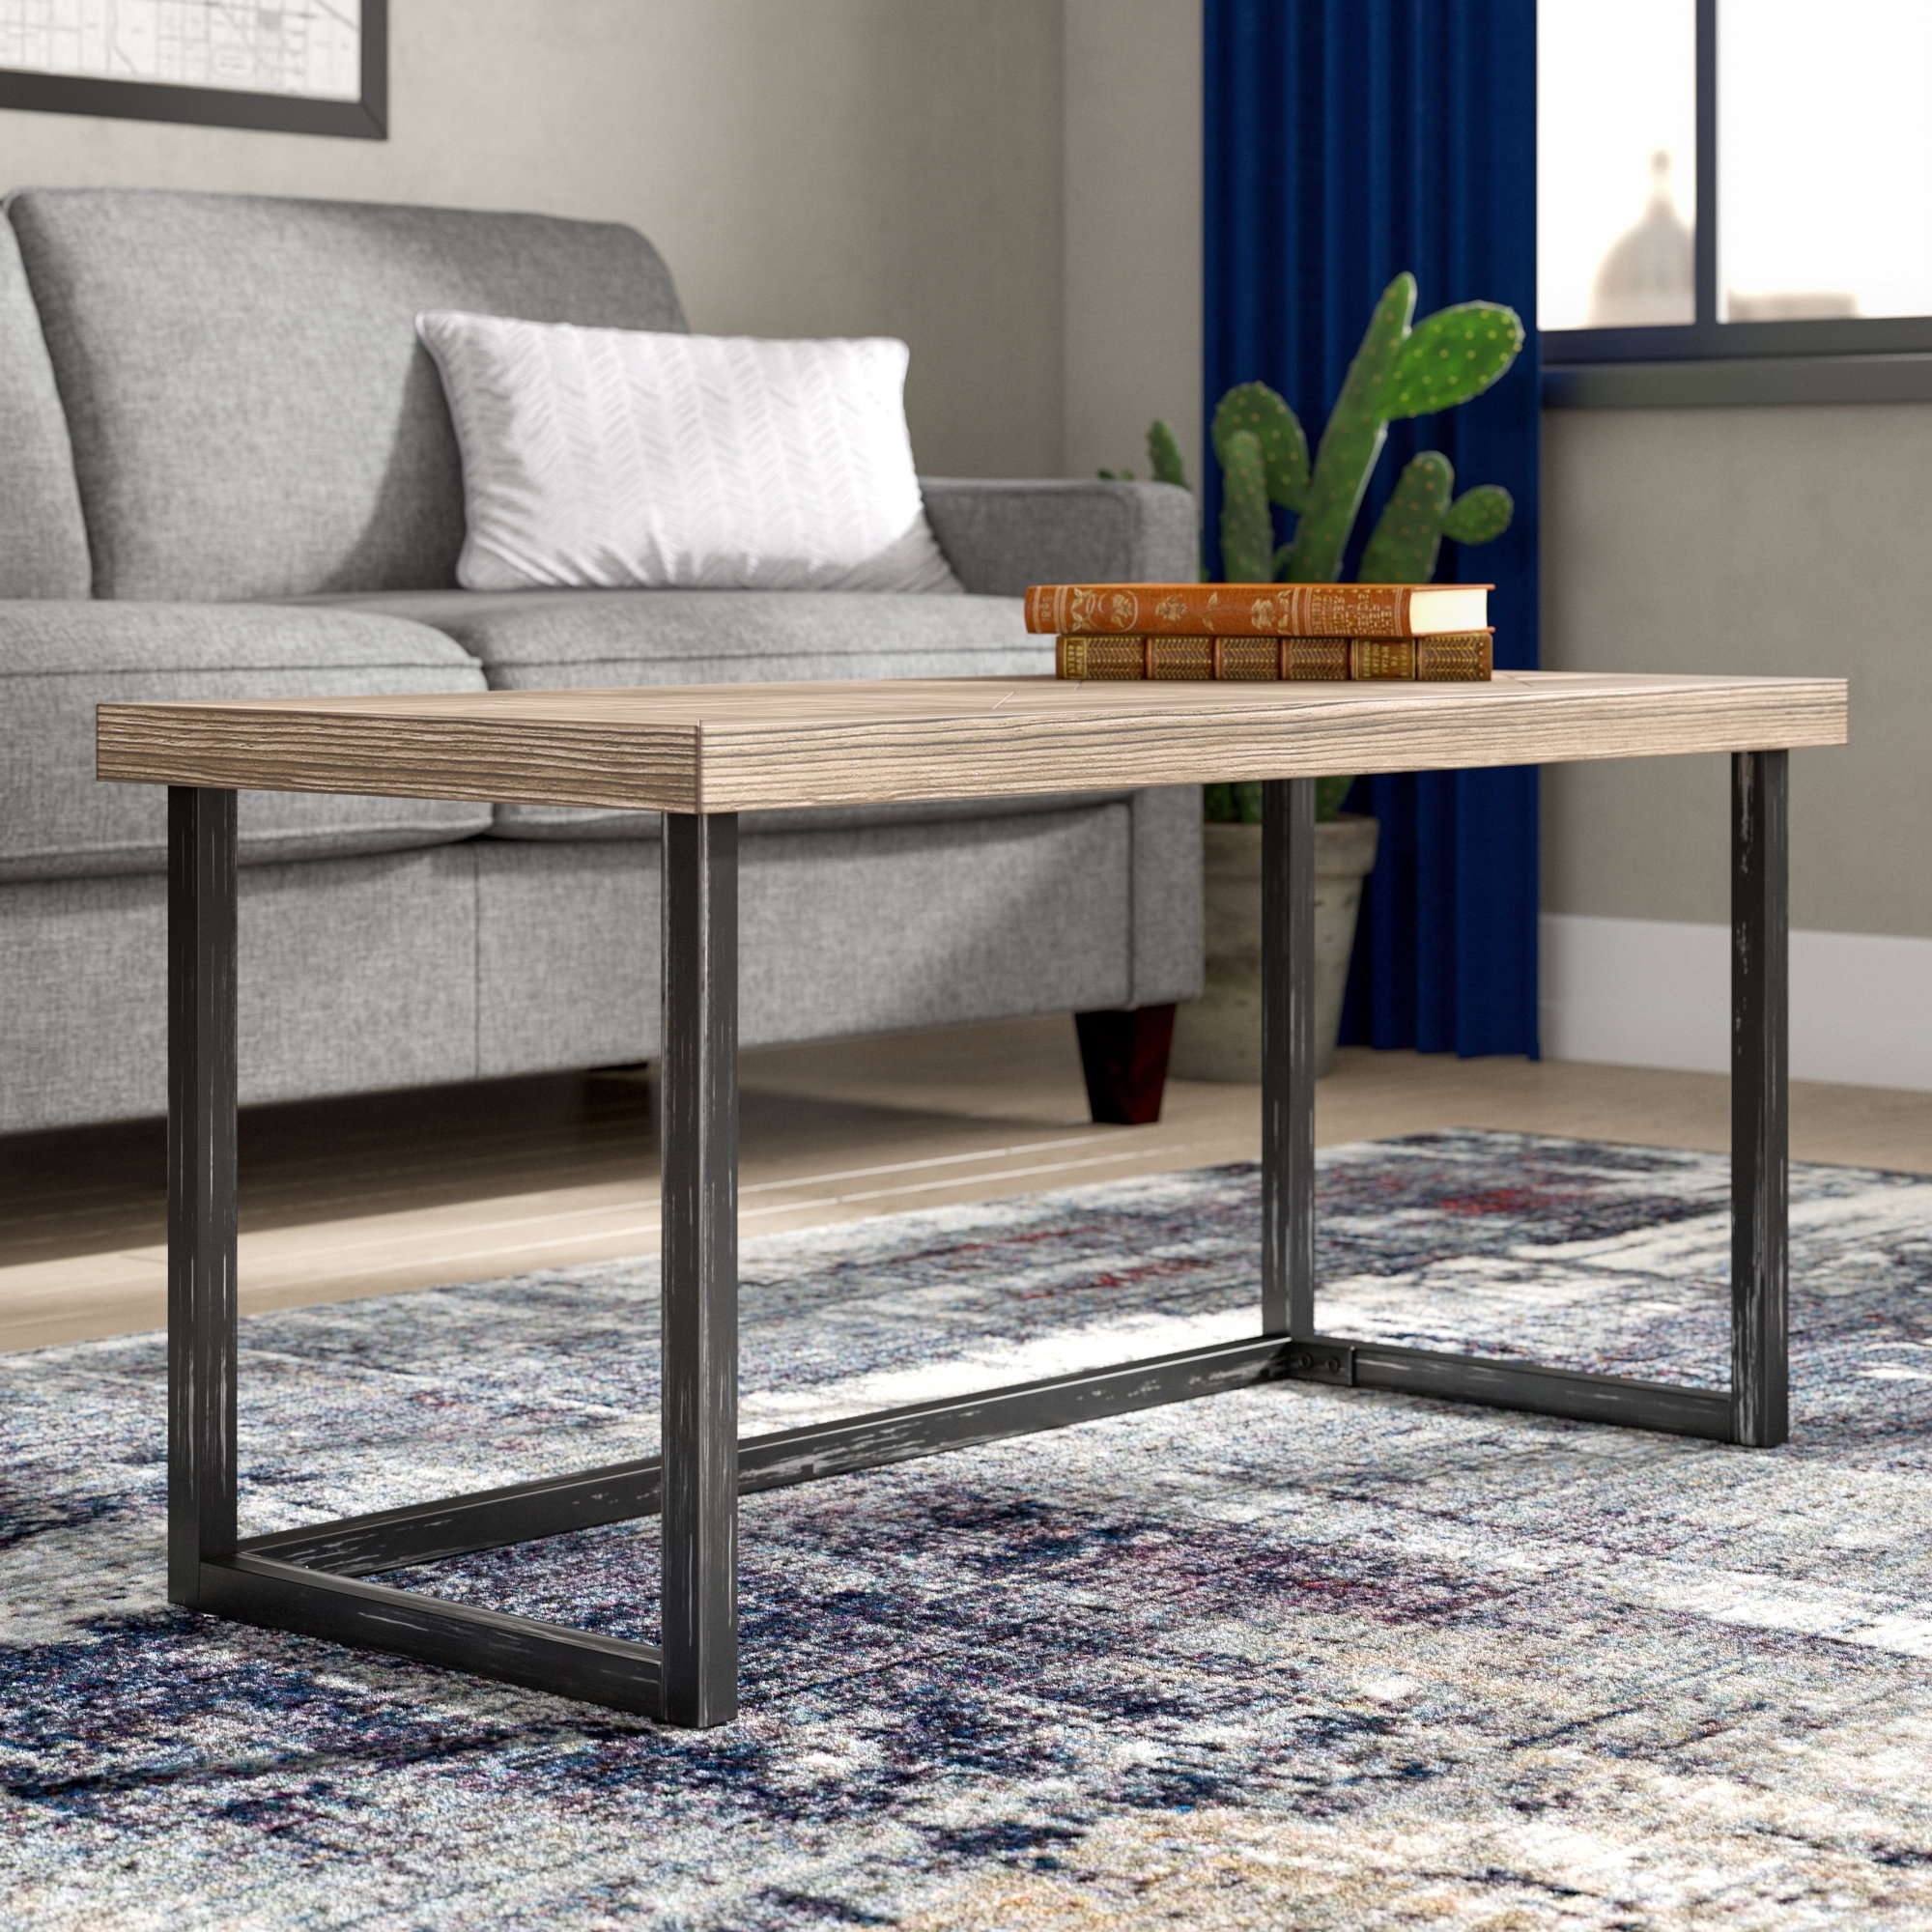 Latest Parquet Coffee Tables With Regard To Adalheid Parquet Coffee Table & Reviews (View 19 of 20)